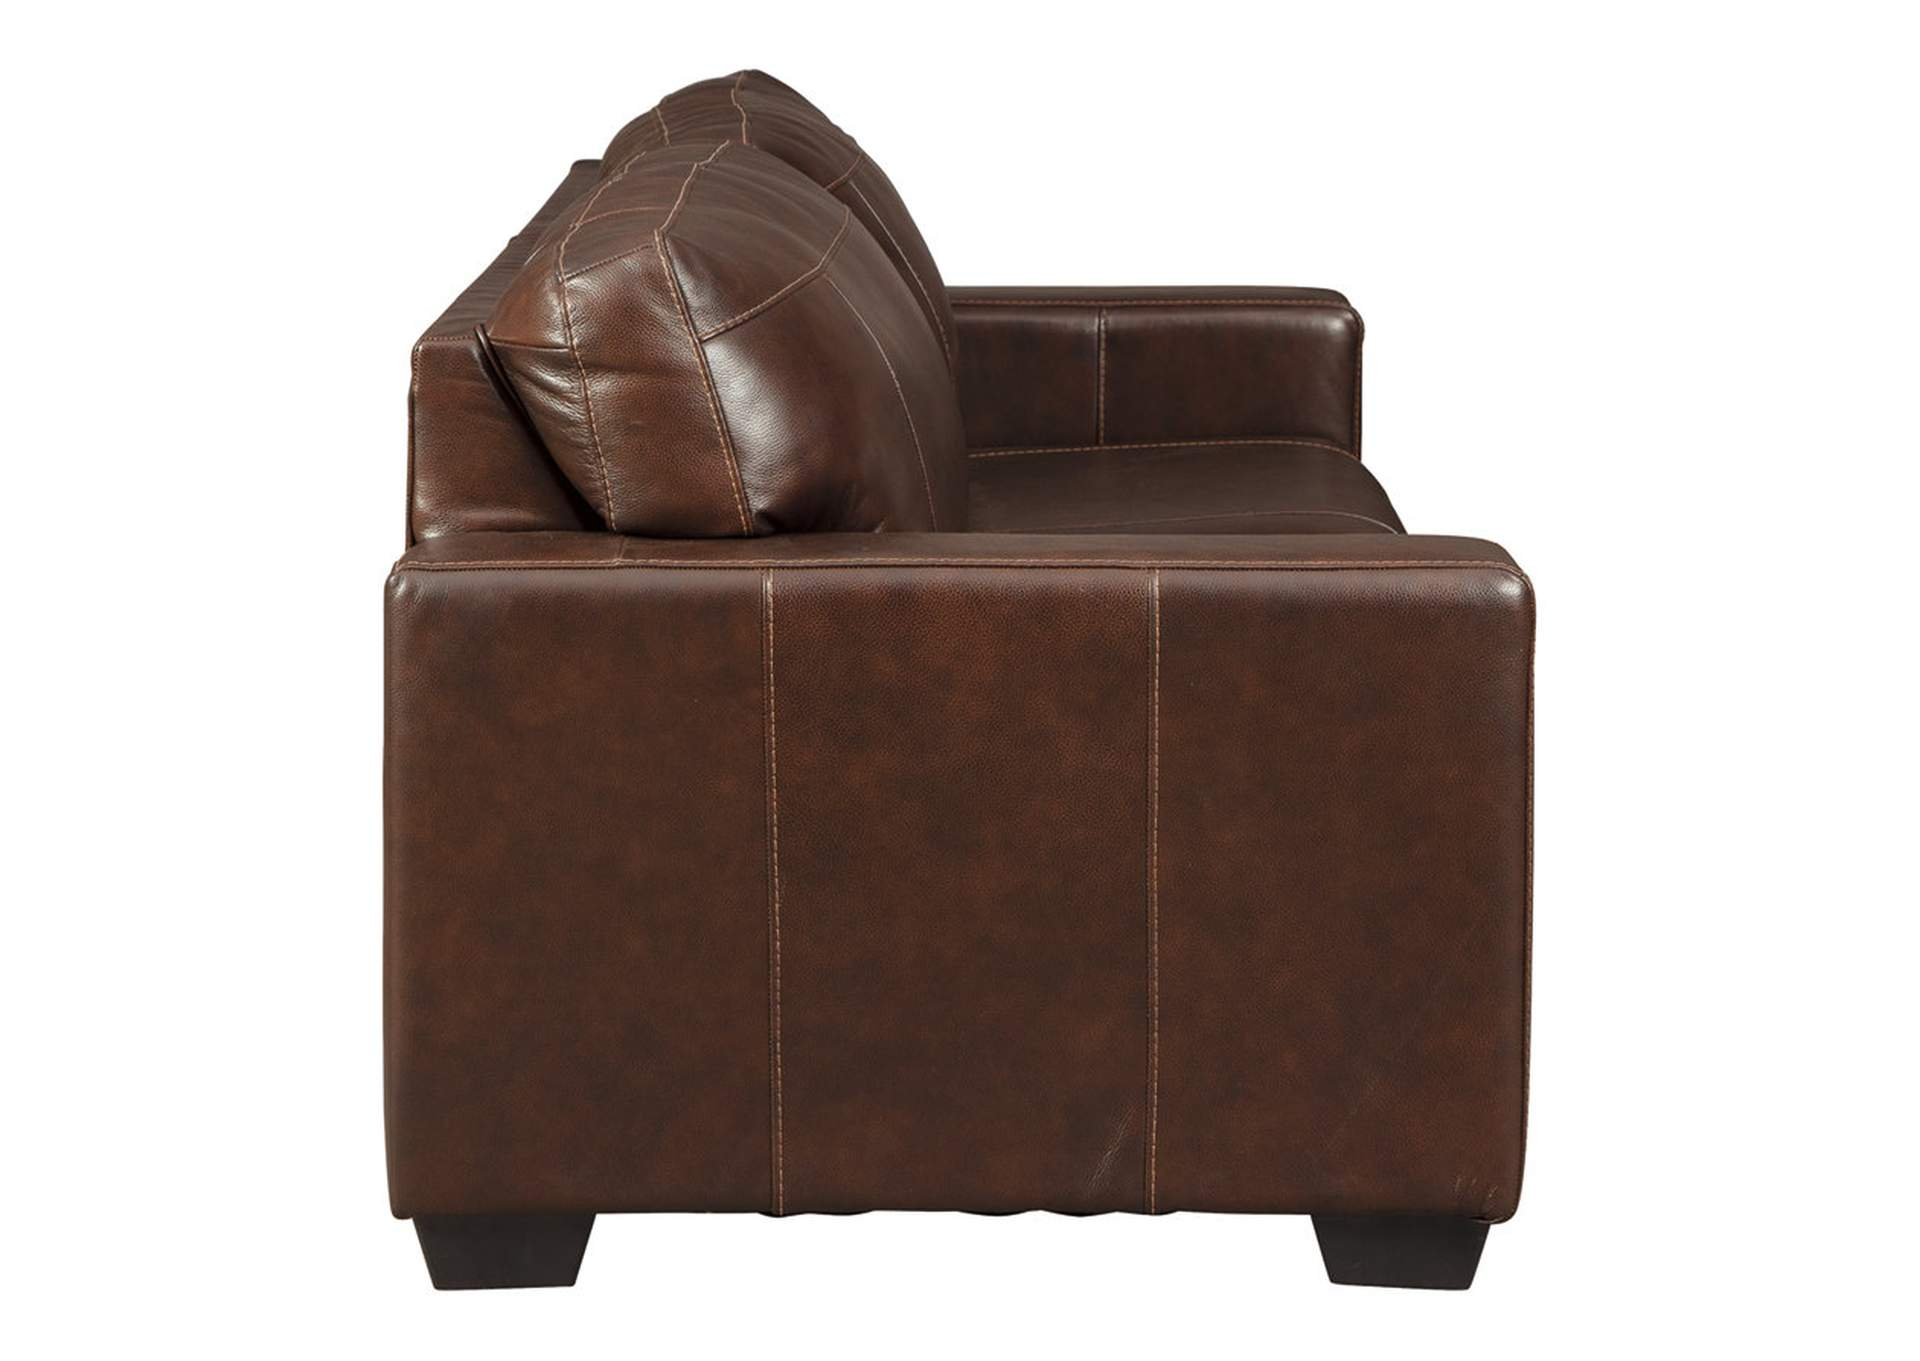 Morelos Chocolate Queen Sofa Sleeper,Signature Design By Ashley